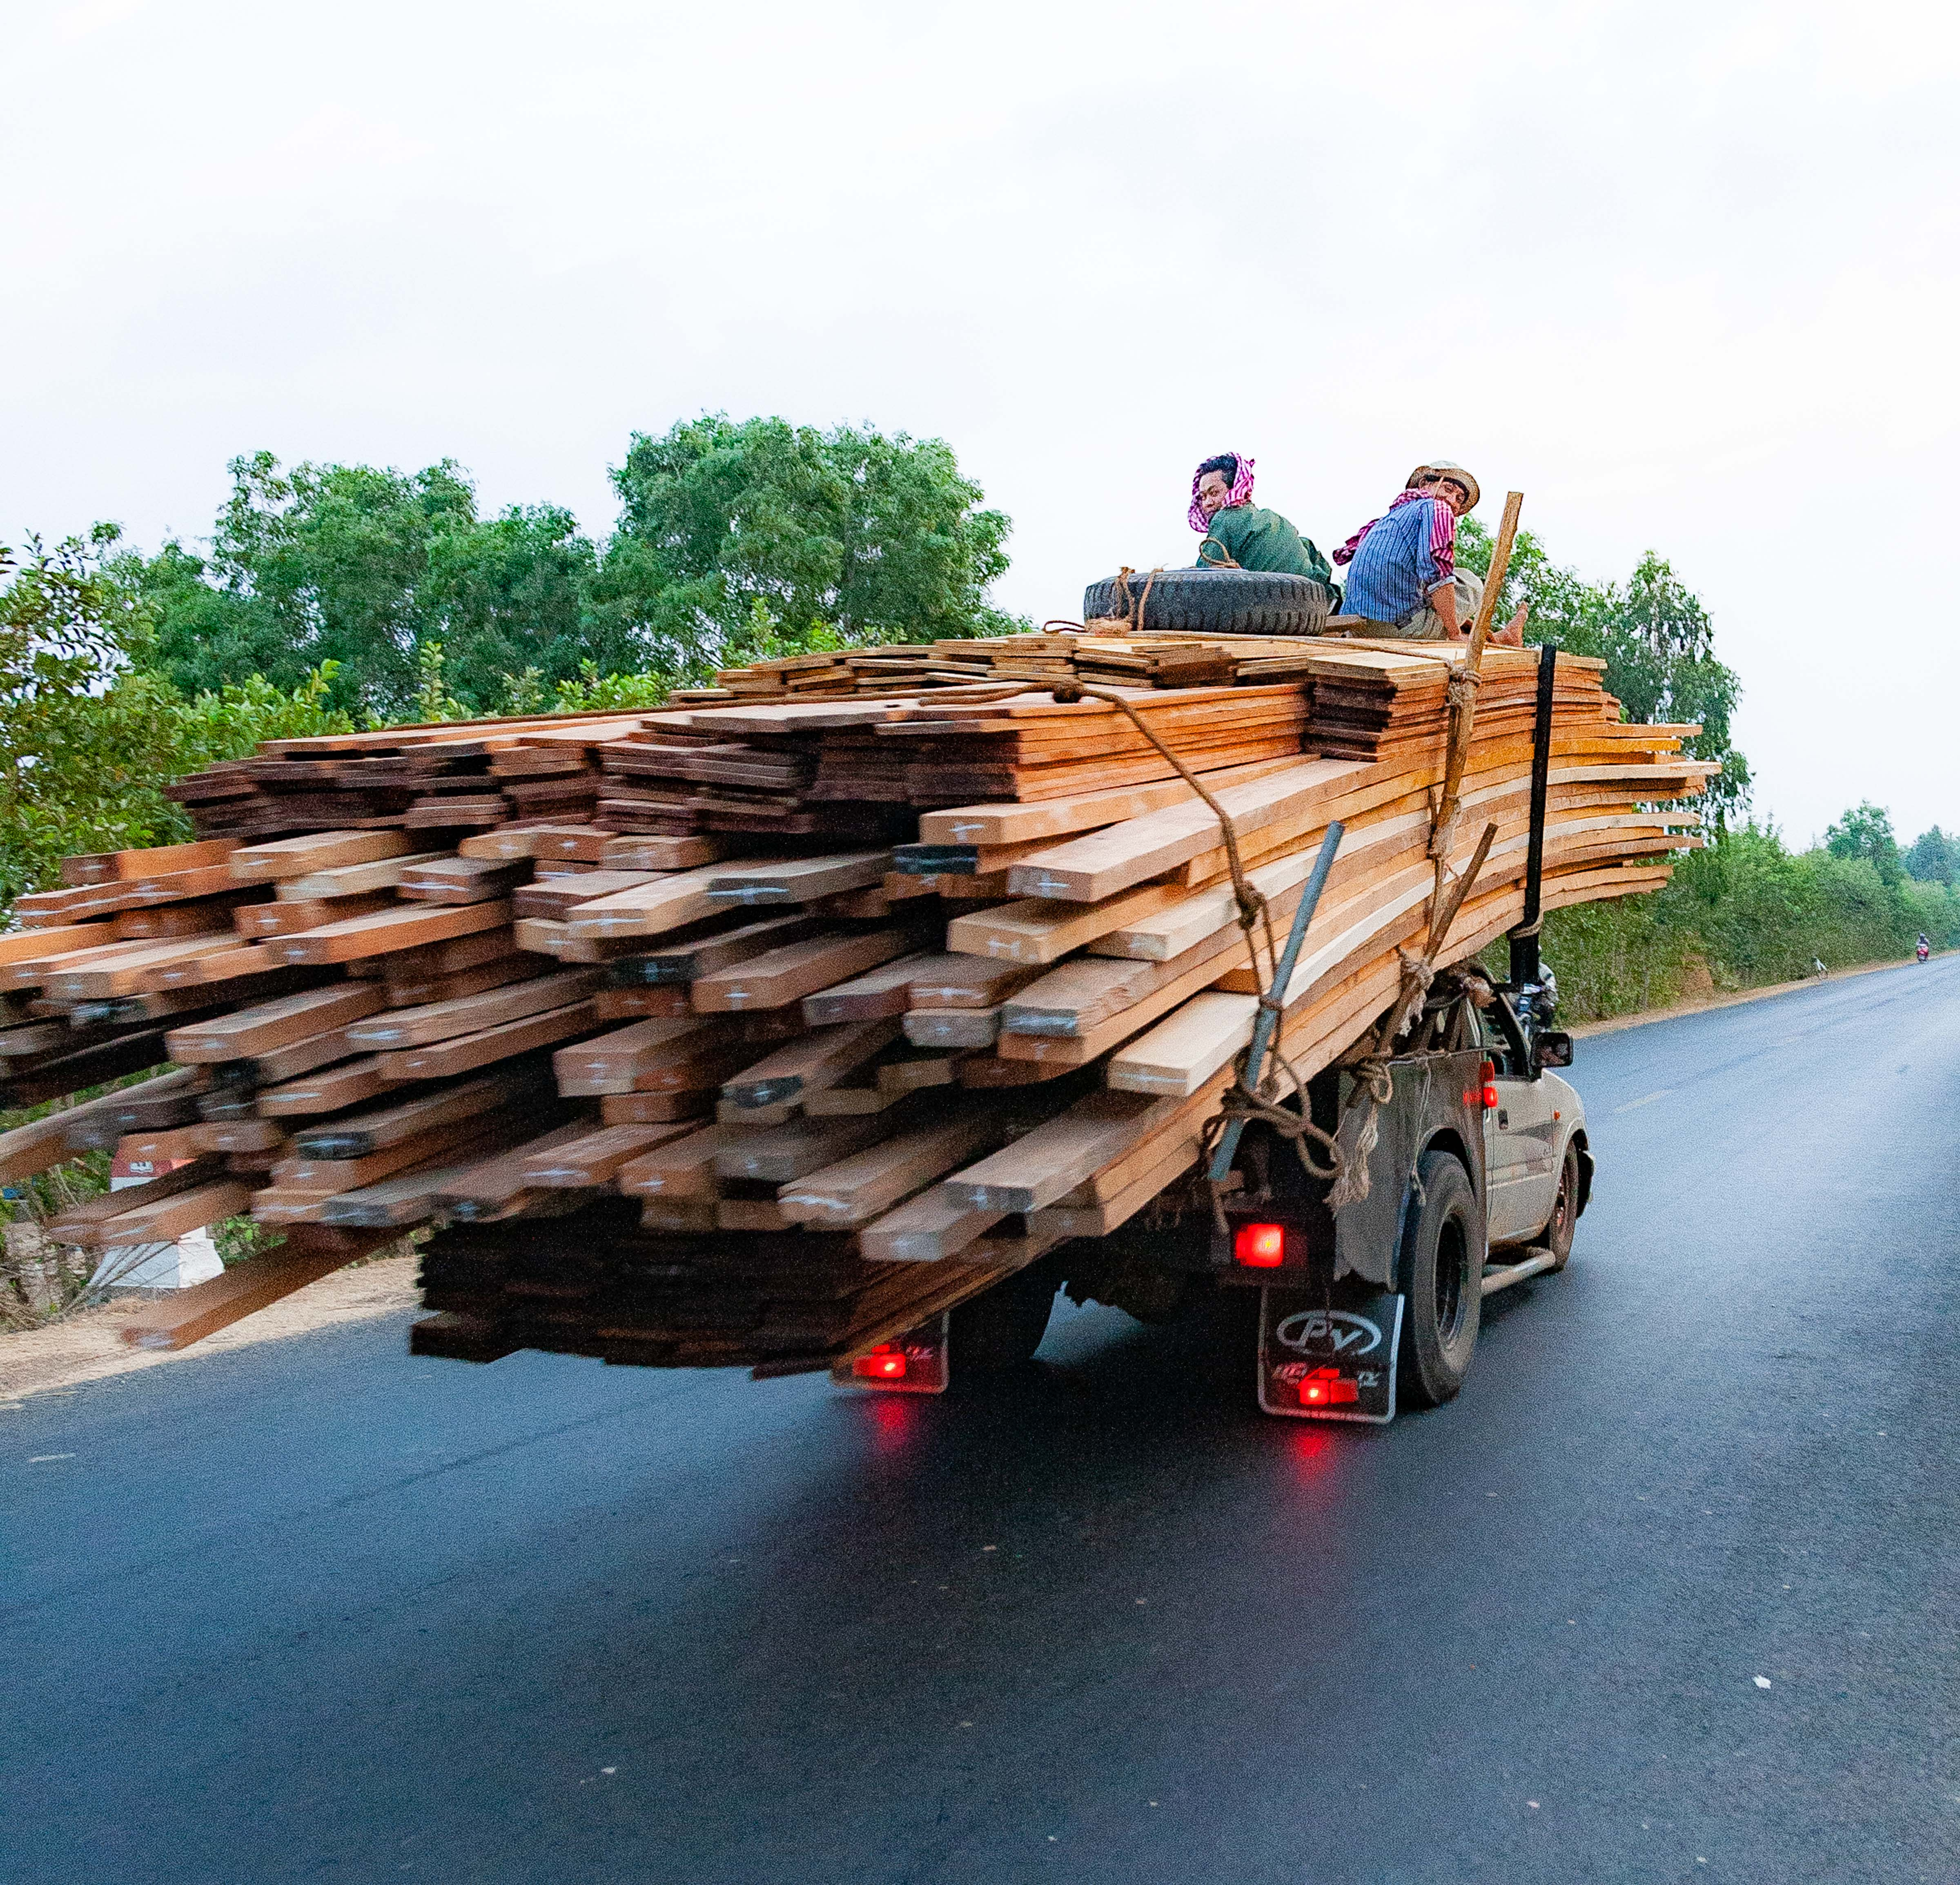 Cambodia, Prey Veaeng Prov, Wood Truck, 2010, IMG 5322